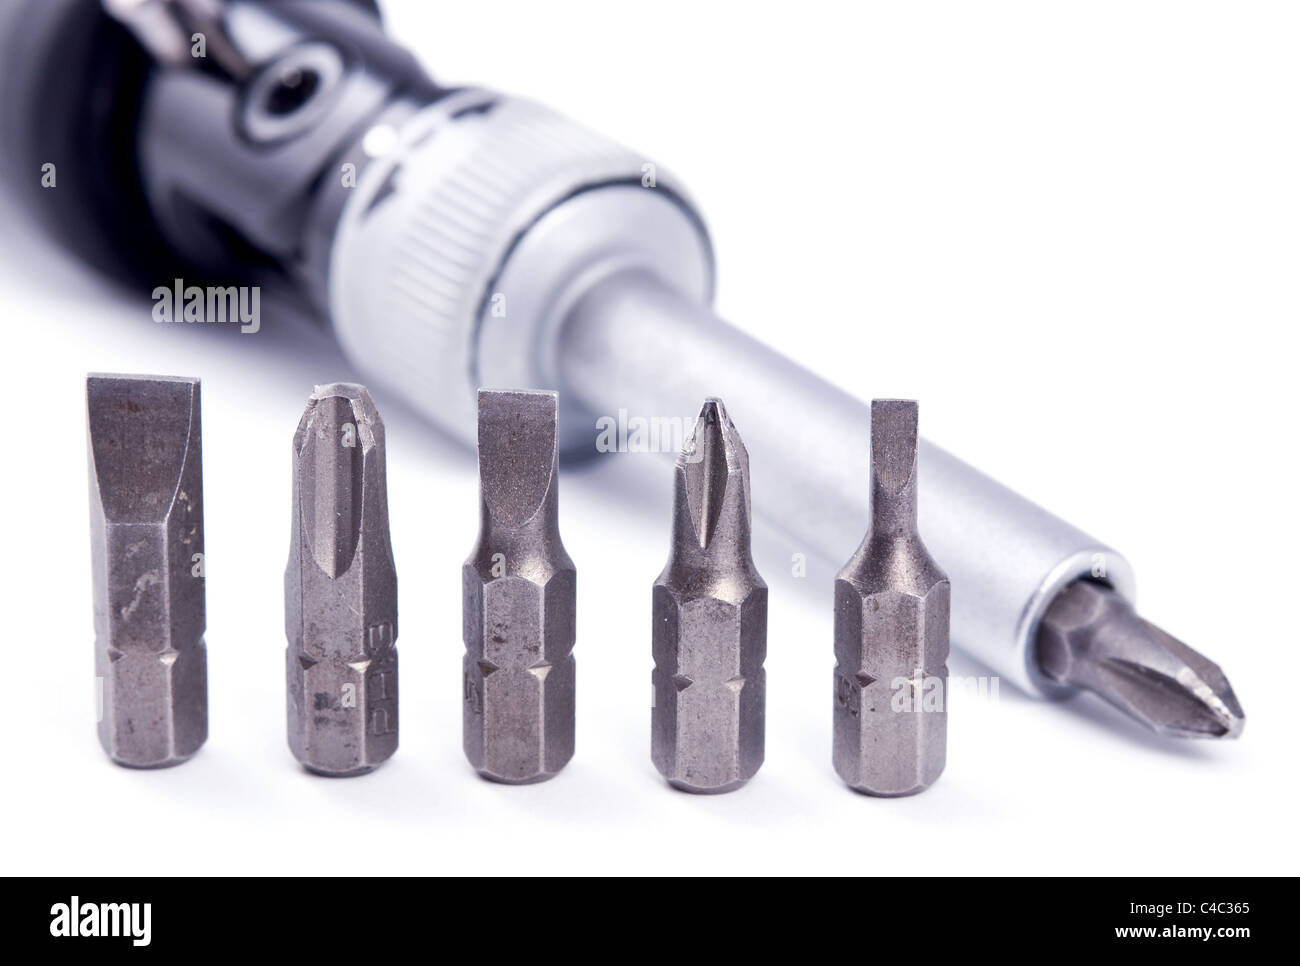 Screwdriver and removable bits isolated on white Stock Photo